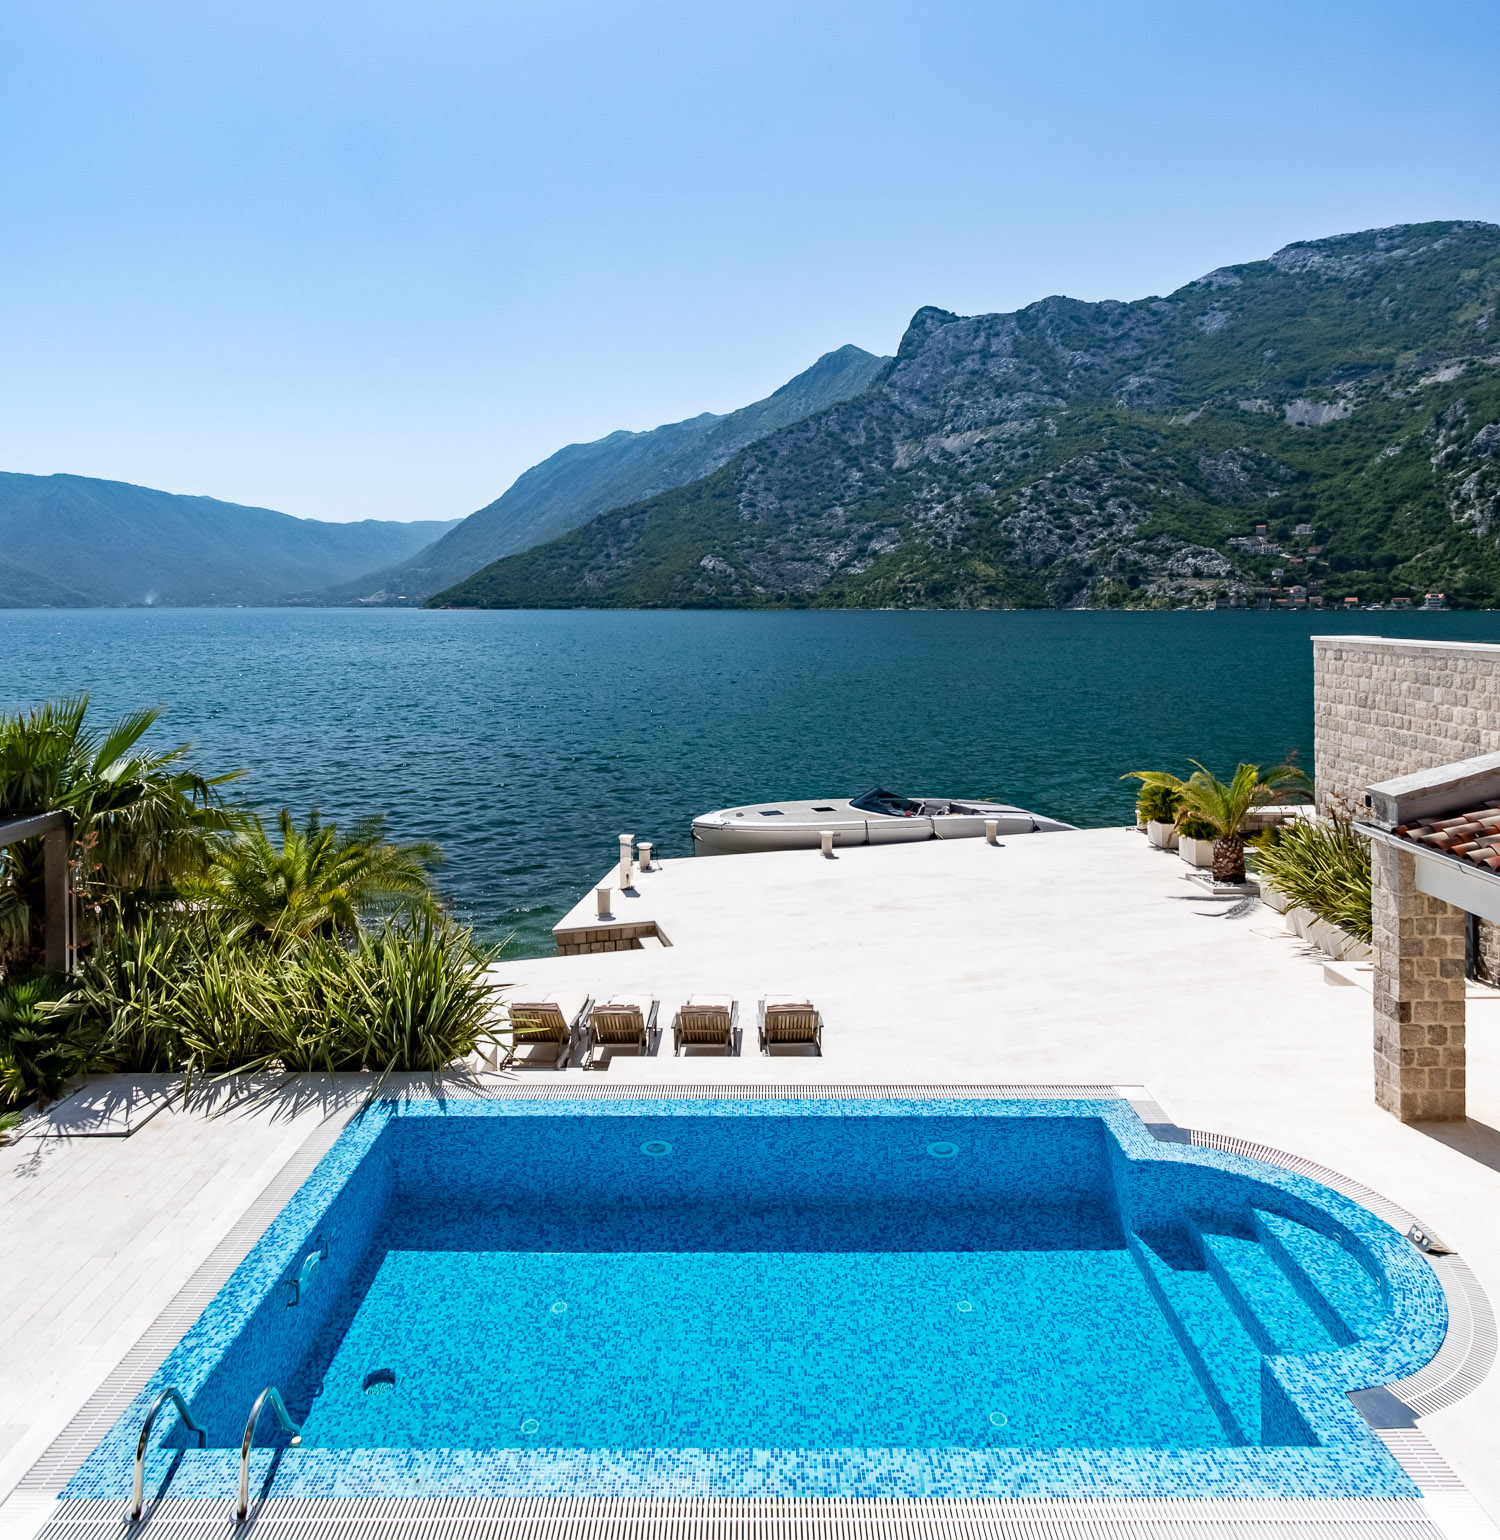 waterfront-house-with-pool-risan-Bay-Of-Kotor-Montenegro-entrance.JPG